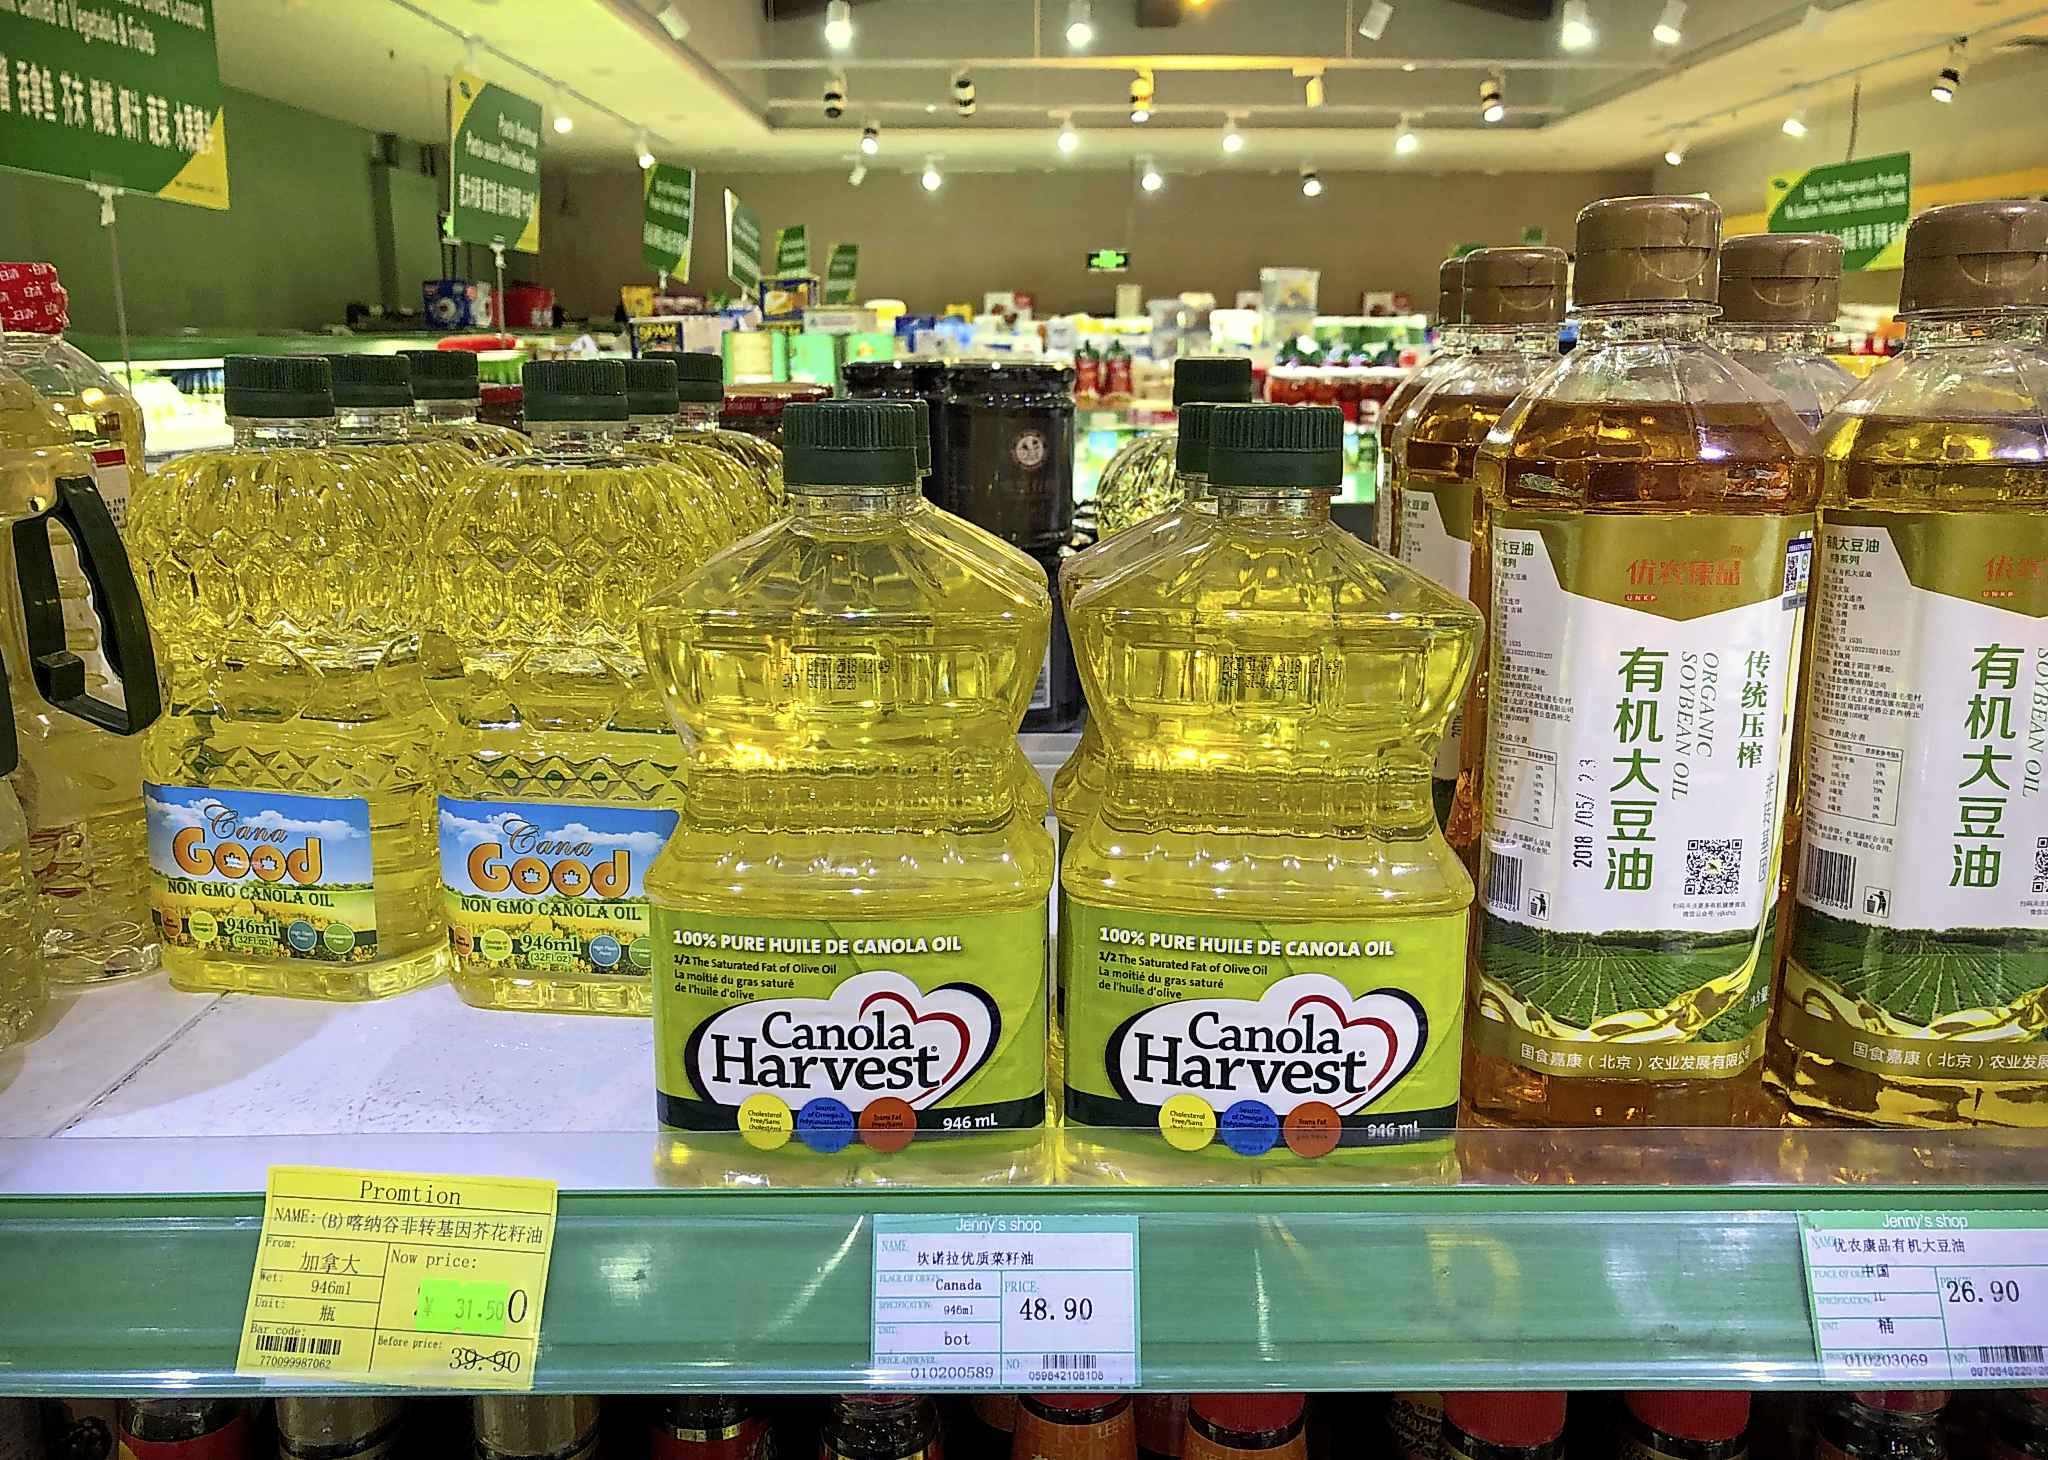 Bottles of Canola Harvest brand canola oil, manufactured by Richardson International, are seen on the shelf of a grocery store in Beijing.